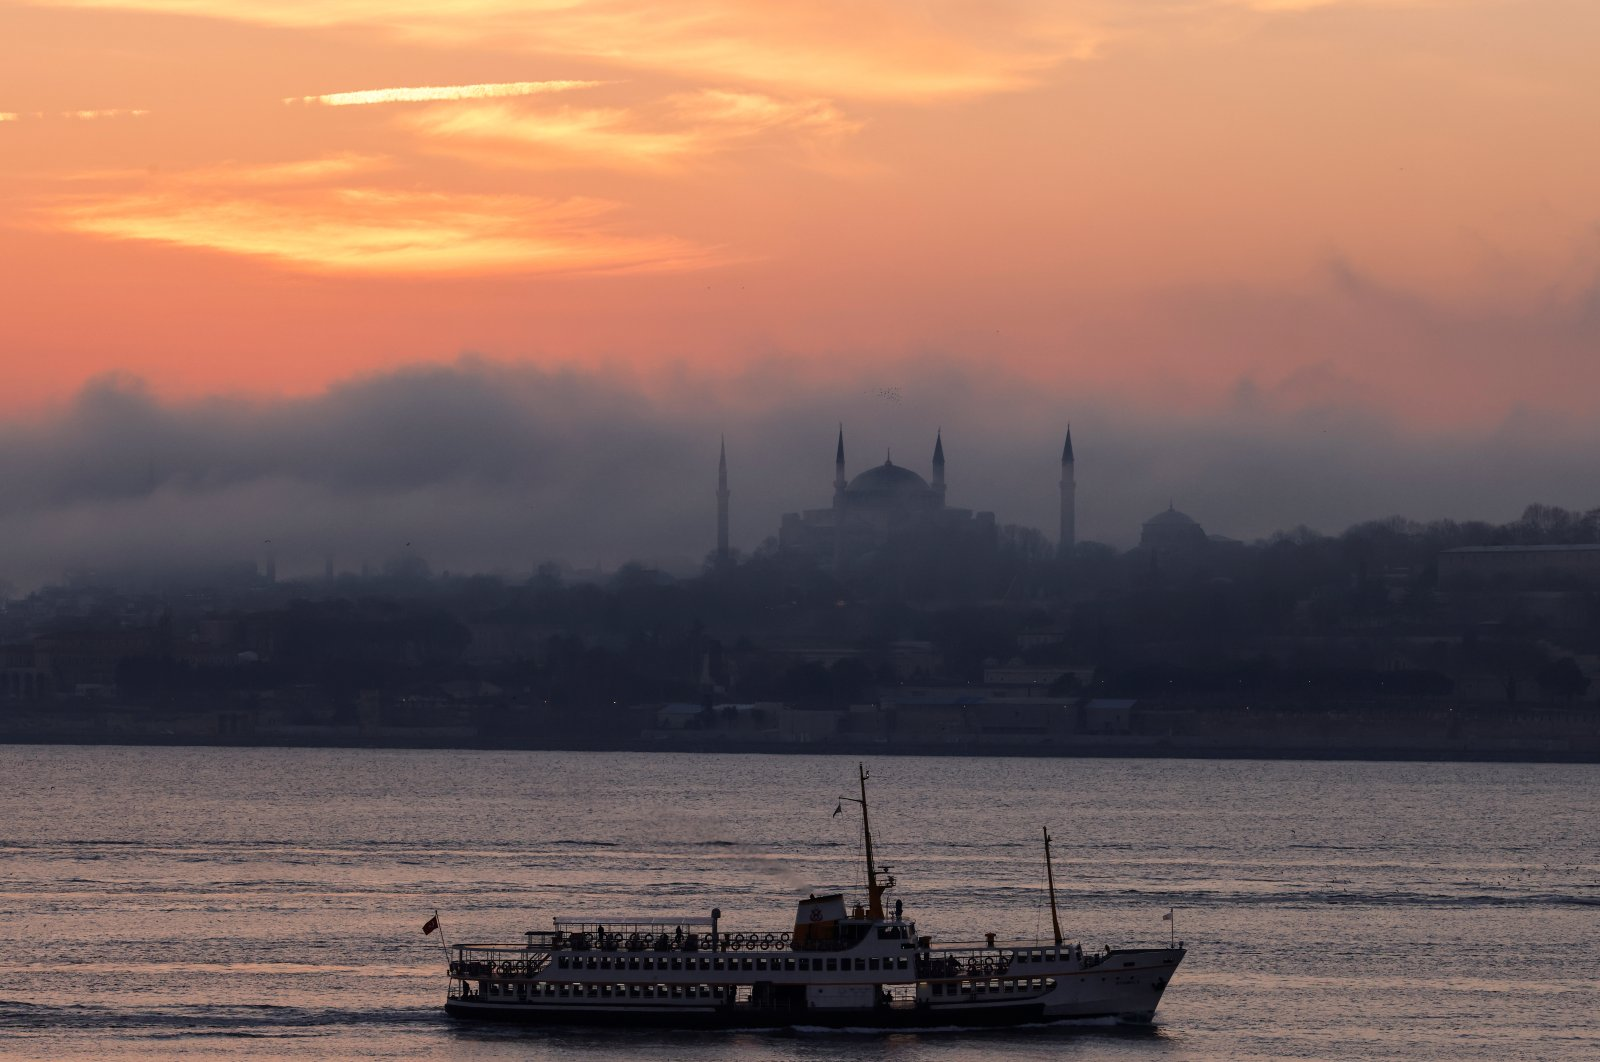 A ferry sails through the Bosporus with the Hagia Sophia Grand Mosque in the background during a two-day curfew amid the spread of the coronavirus, in Istanbul, Turkey, Feb. 6, 2021. (Reuters Photo)